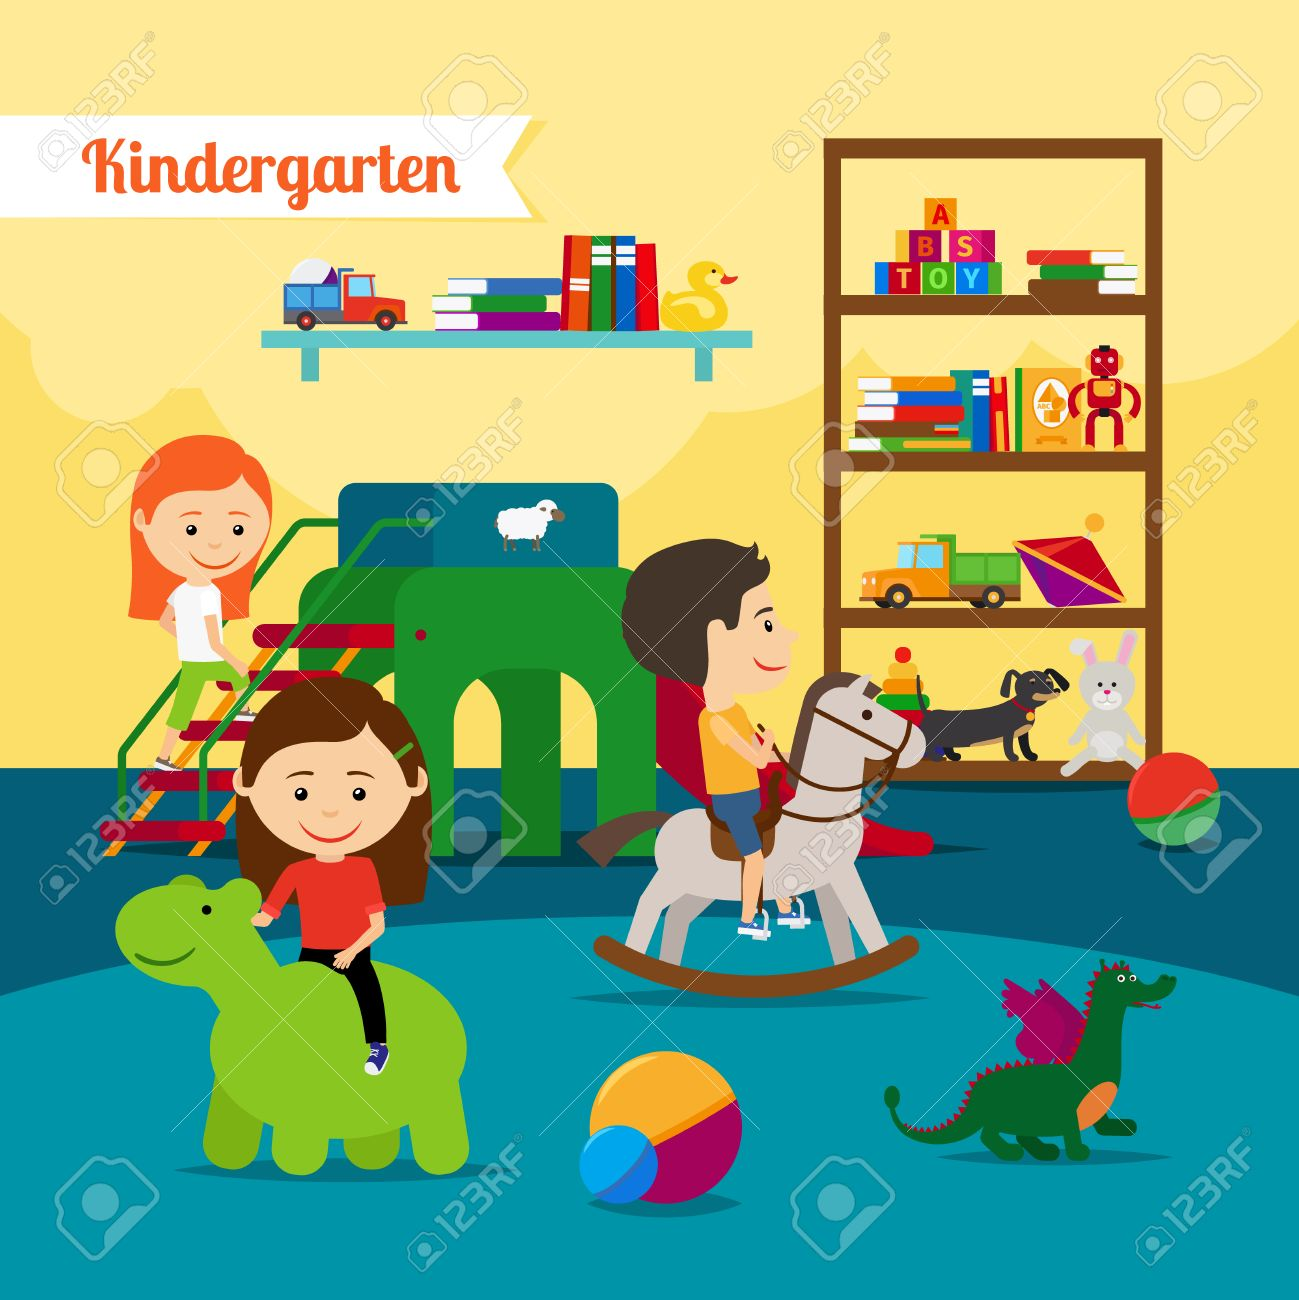 Seductive Kindergarten Children Playing In Kinder Garden Vector  With Lovely Kindergarten Children Playing In Kinder Garden Vector Illustration Stock  Vector   With Comely Kew Gardens Inn Also Piazza Covent Garden In Addition Downtown Garden Centre Gonerby Moor And Childrens Garden Play Centres As Well As Garden Felt Additionally Gardeners World Website From Rfcom With   Lovely Kindergarten Children Playing In Kinder Garden Vector  With Comely Kindergarten Children Playing In Kinder Garden Vector Illustration Stock  Vector   And Seductive Kew Gardens Inn Also Piazza Covent Garden In Addition Downtown Garden Centre Gonerby Moor From Rfcom